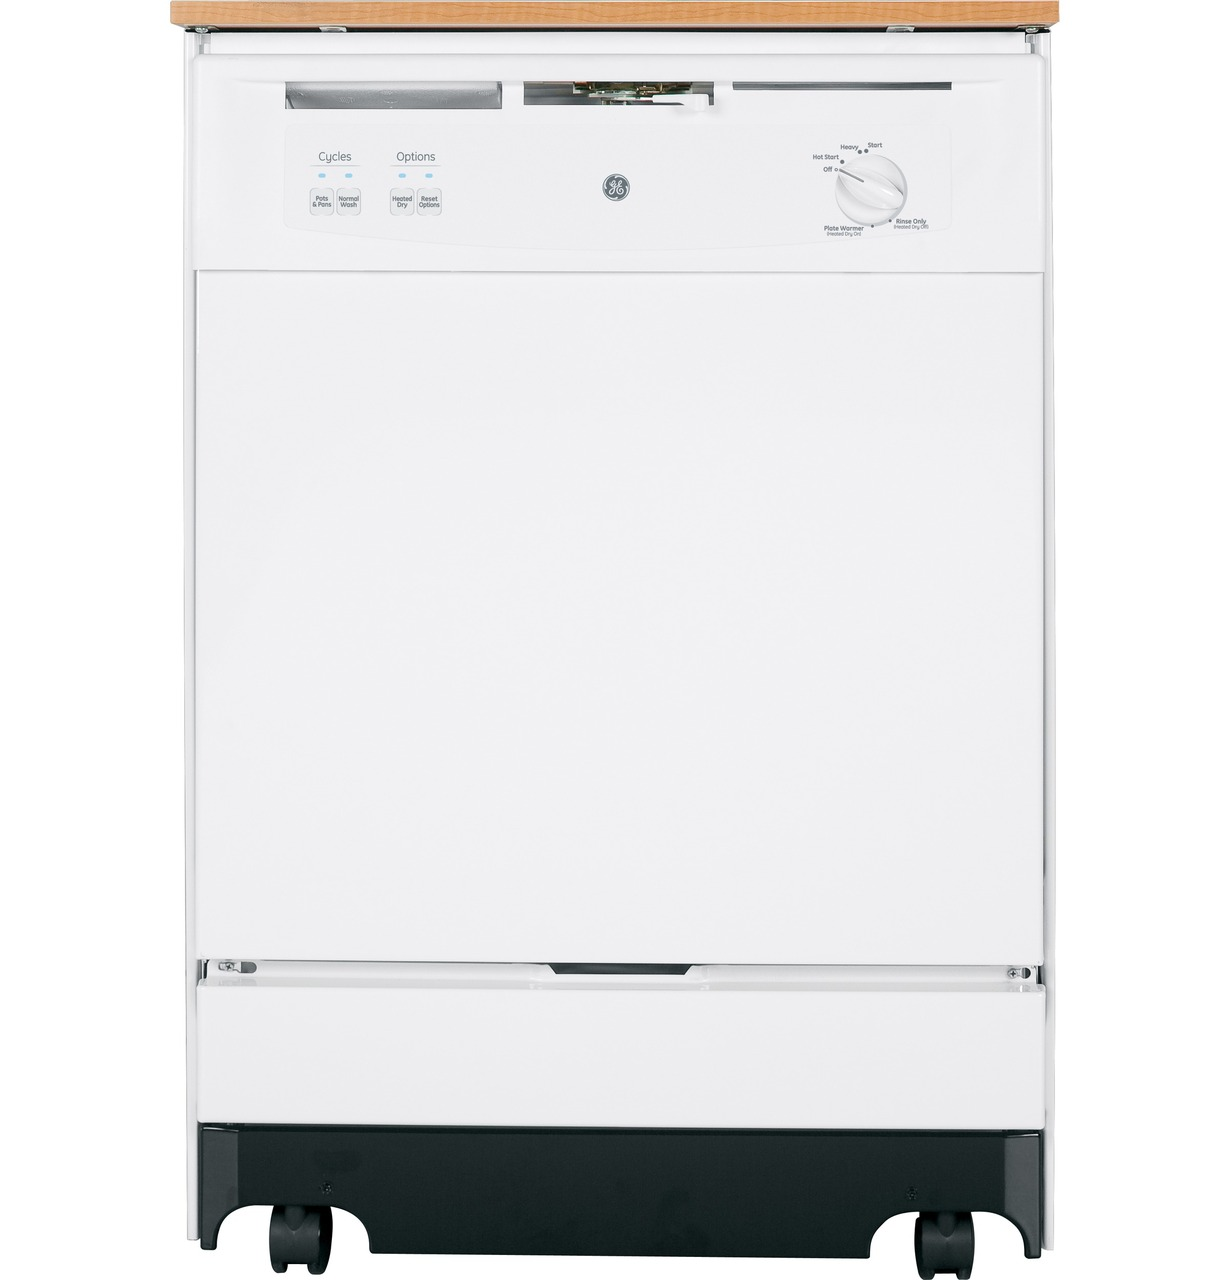 Ge Convertible Portable Dishwasher Gsc3500dww Ge Appliances